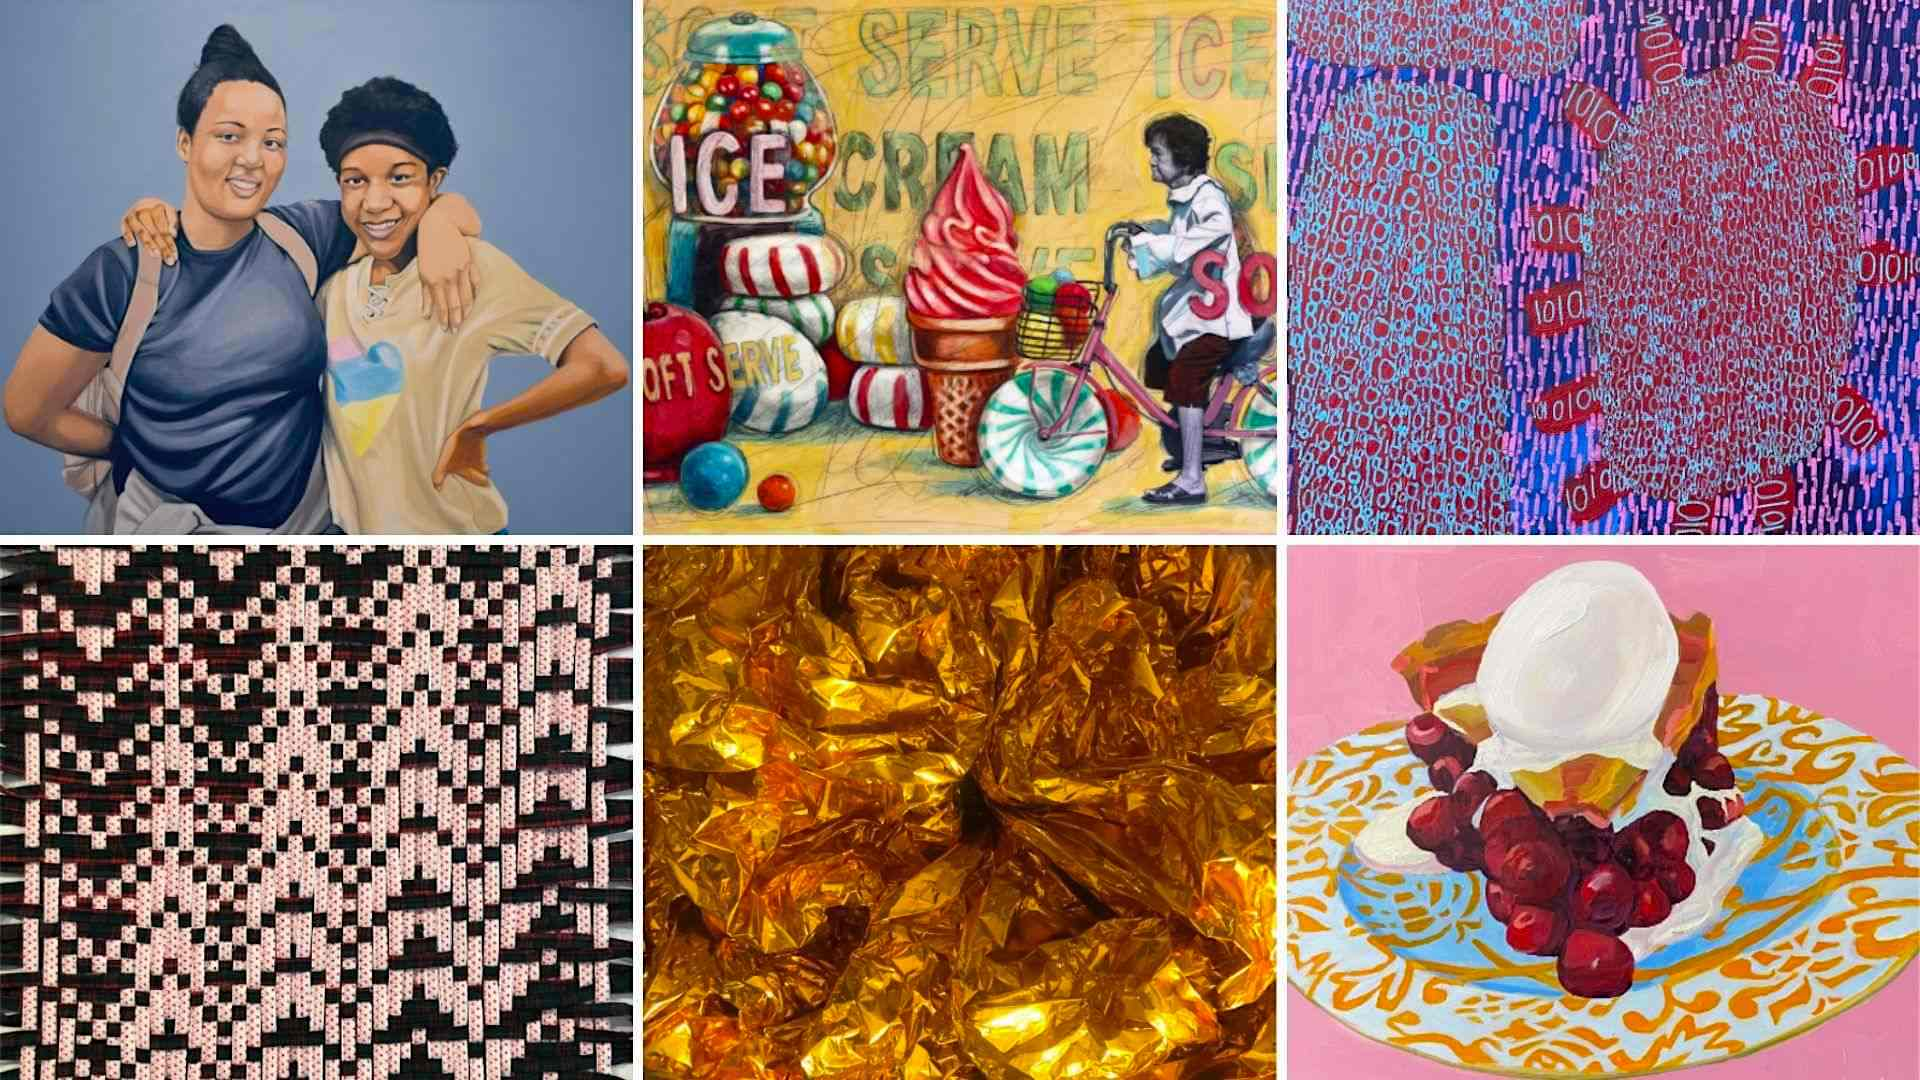 A grid of 6 artworks by Clarence Heyward, Stacy Crabill, King Godwin, Jeana Eve Klein, Ginger Wagg, and Rachel Campbell.